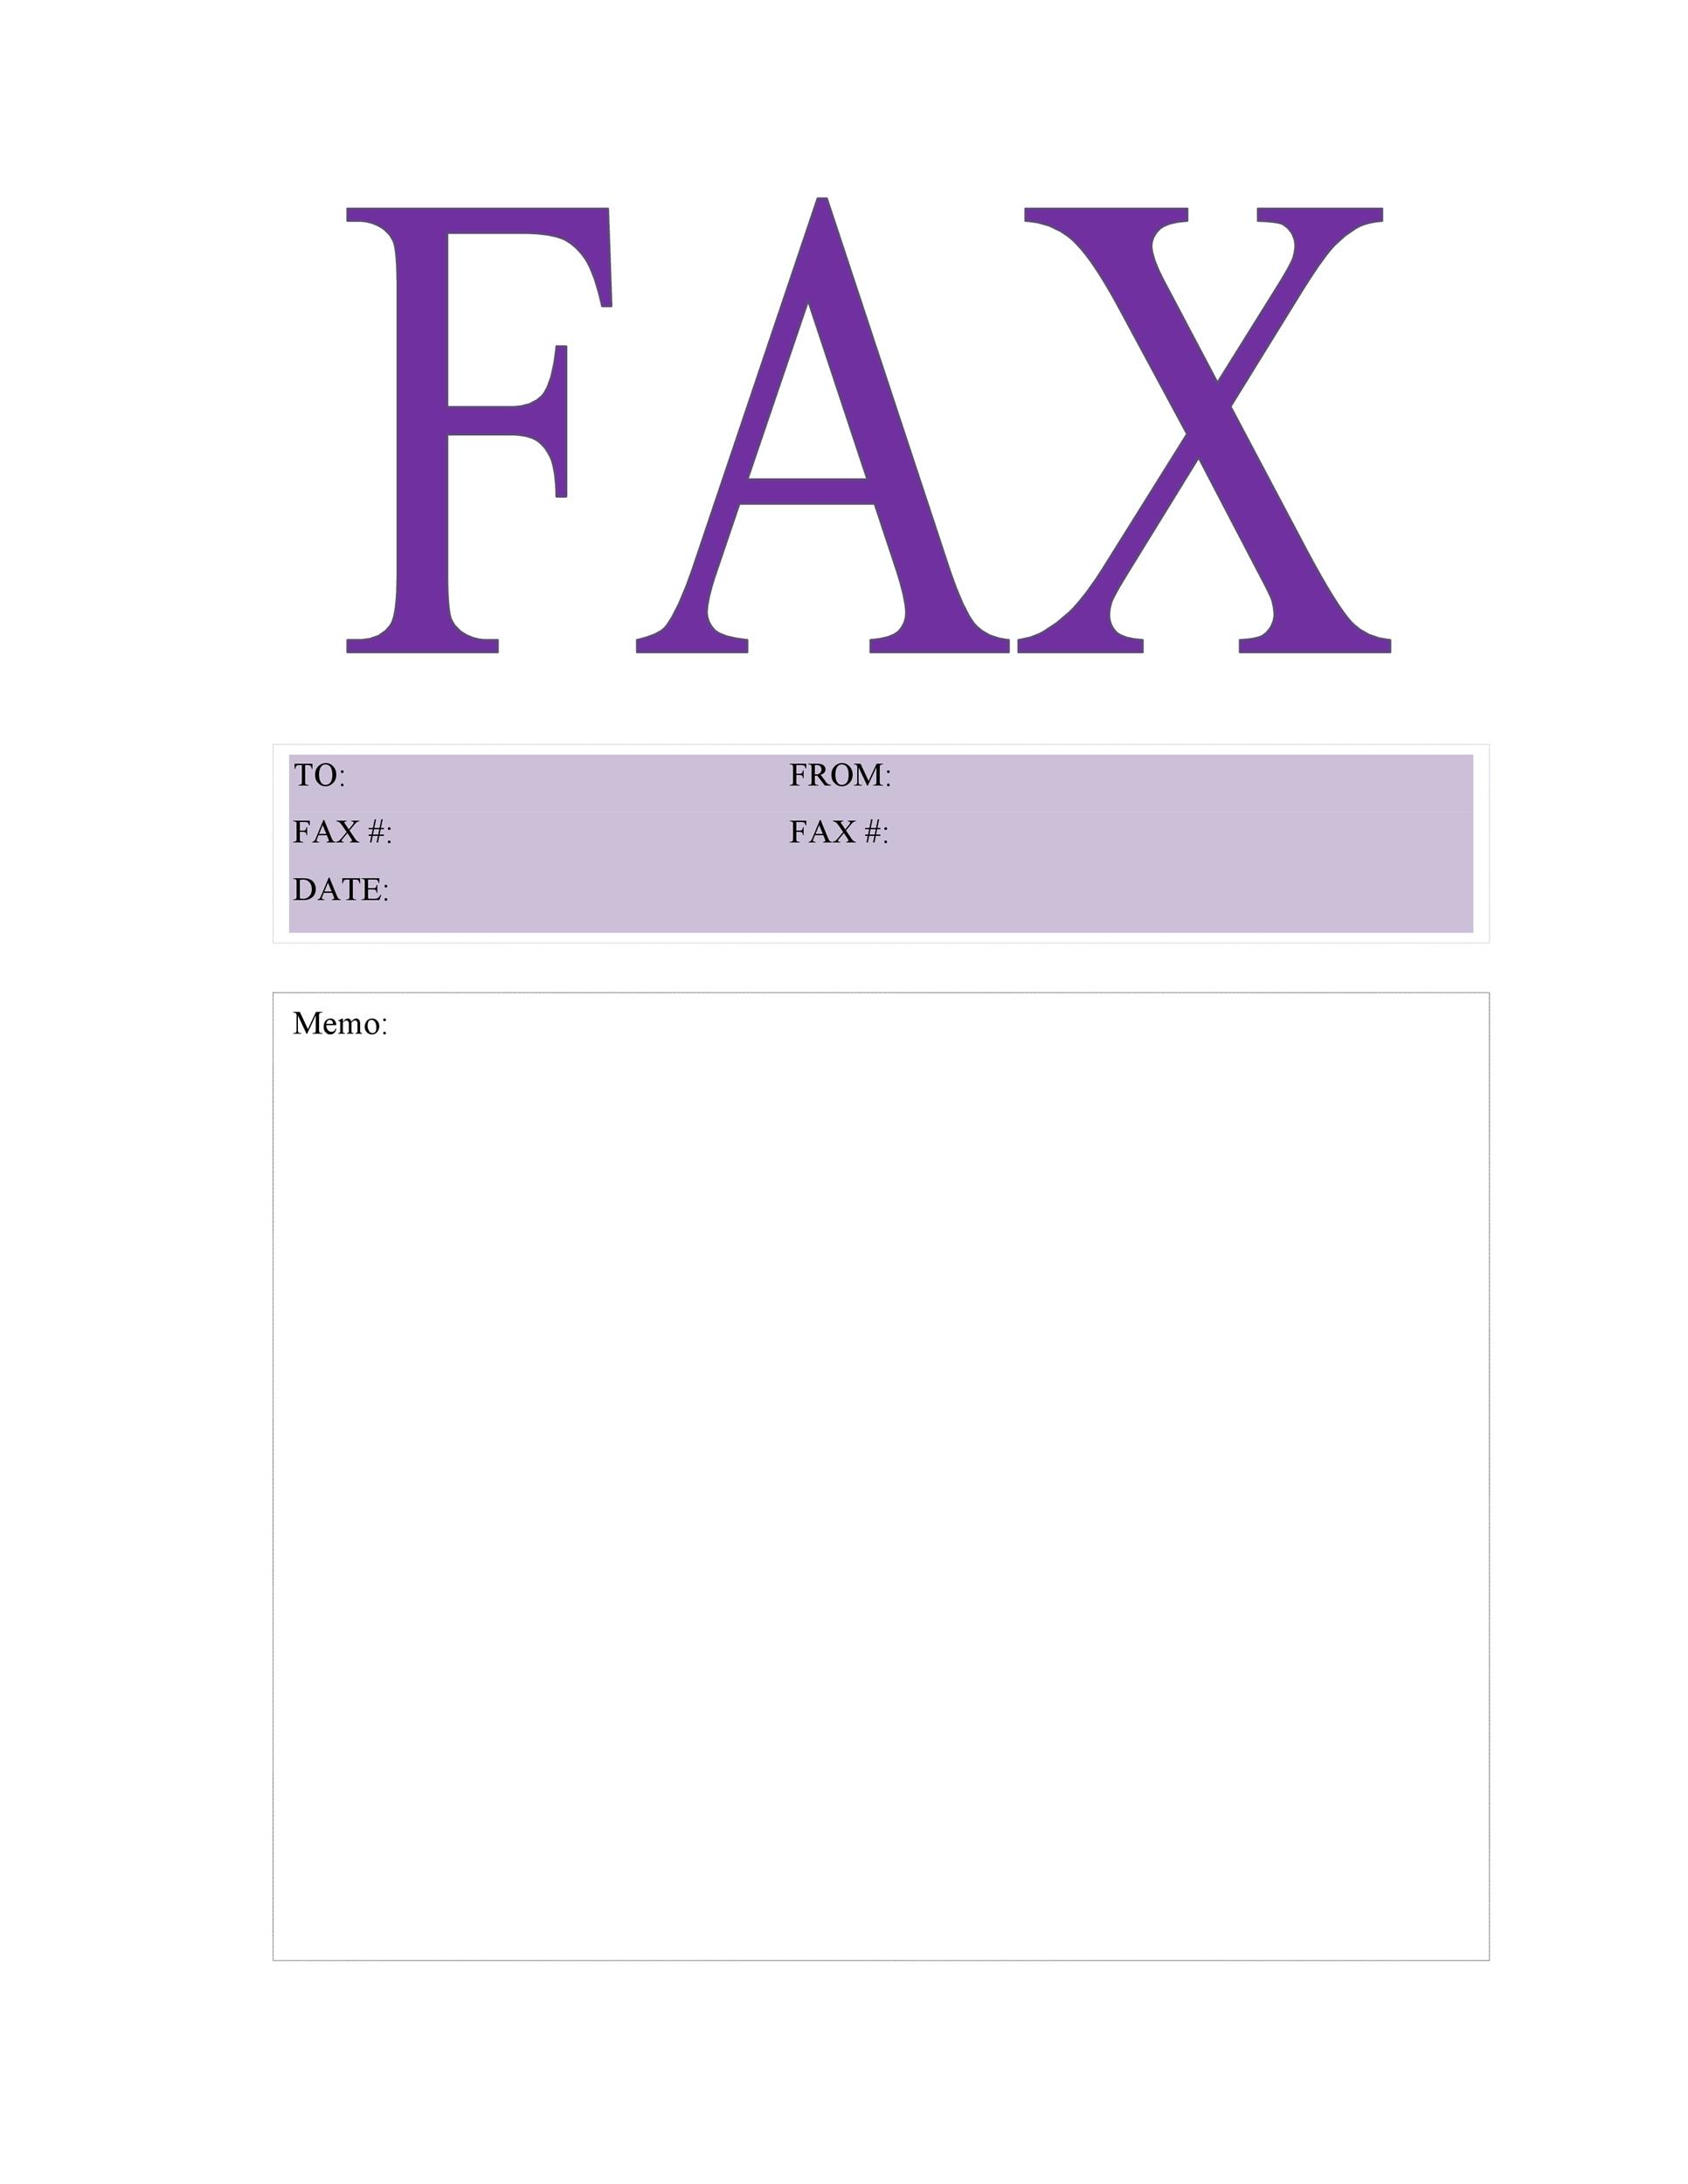 40 Printable Fax Cover Sheet Templates Template Lab – Professional Fax Cover Sheet Template